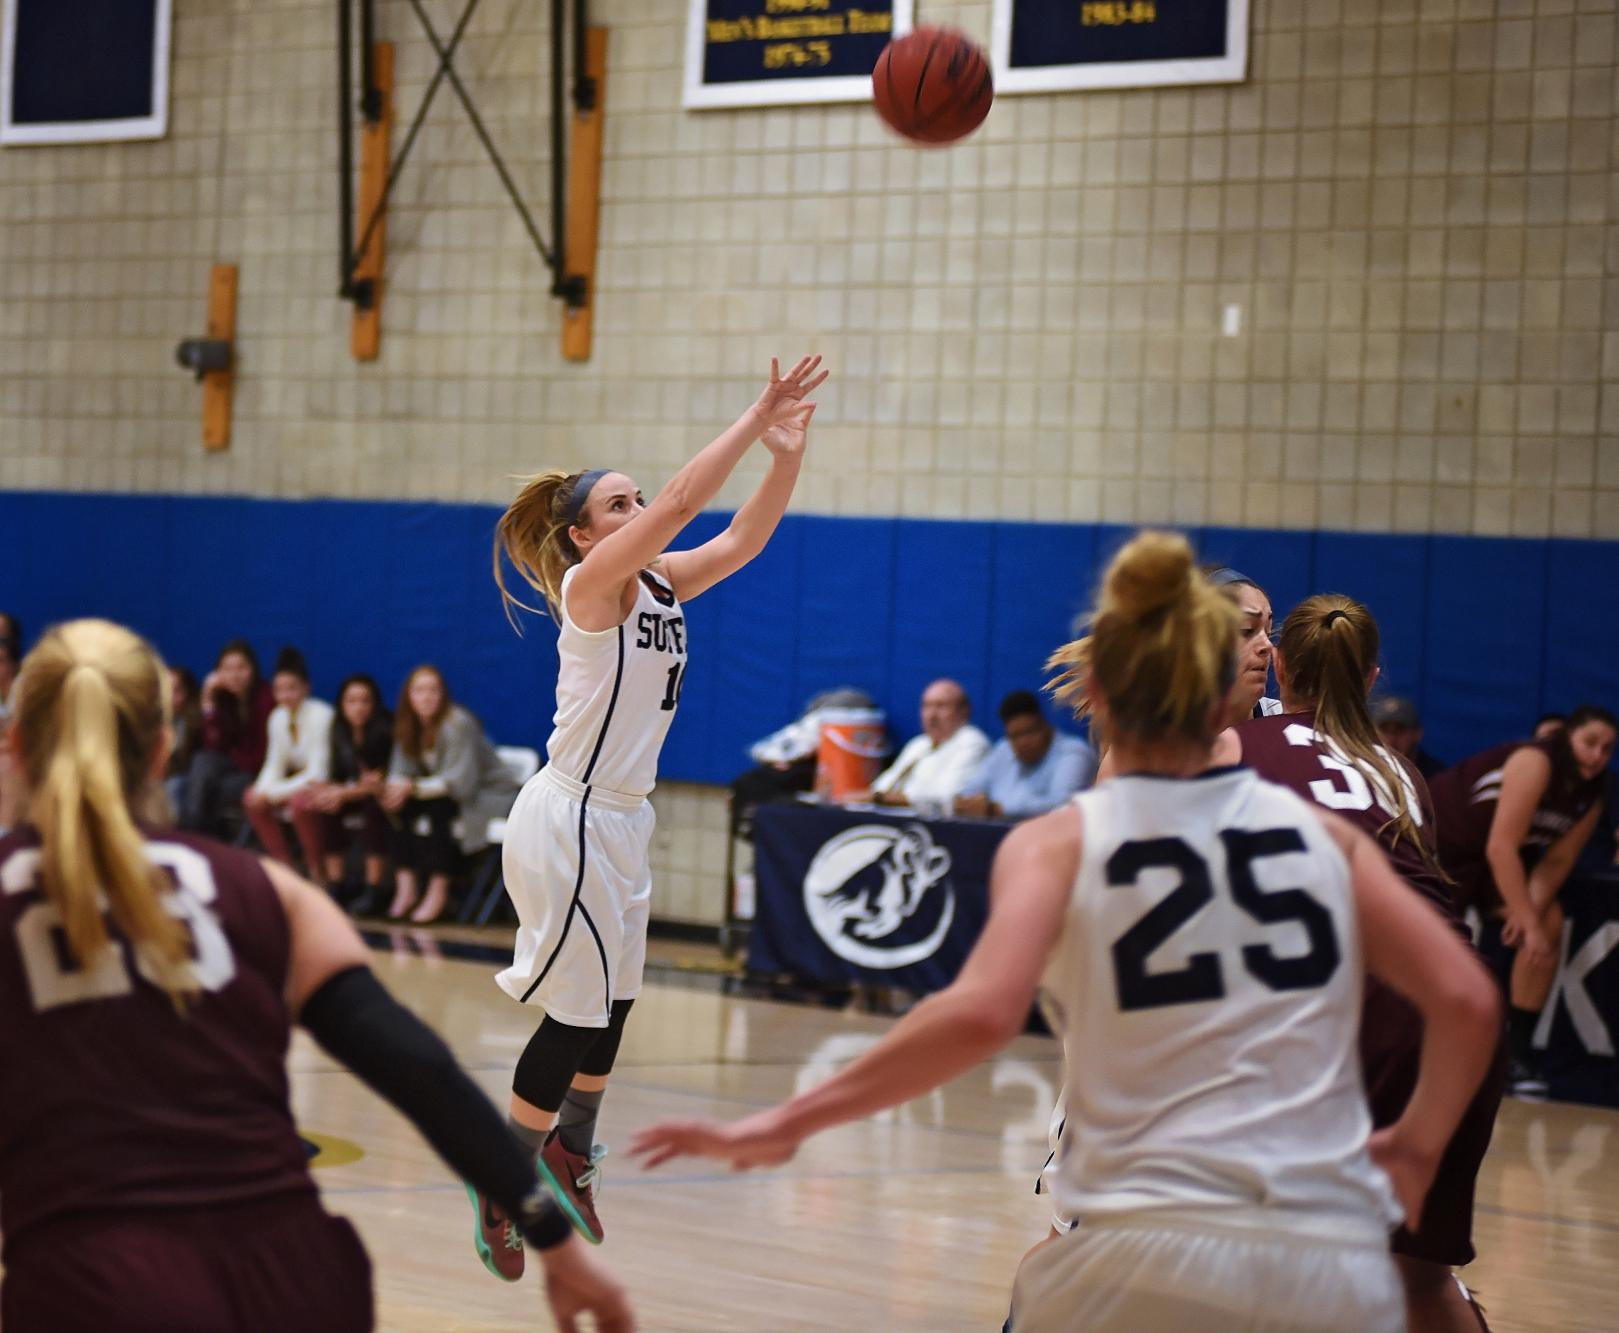 Women's Basketball Clashes at Wentworth Tuesday